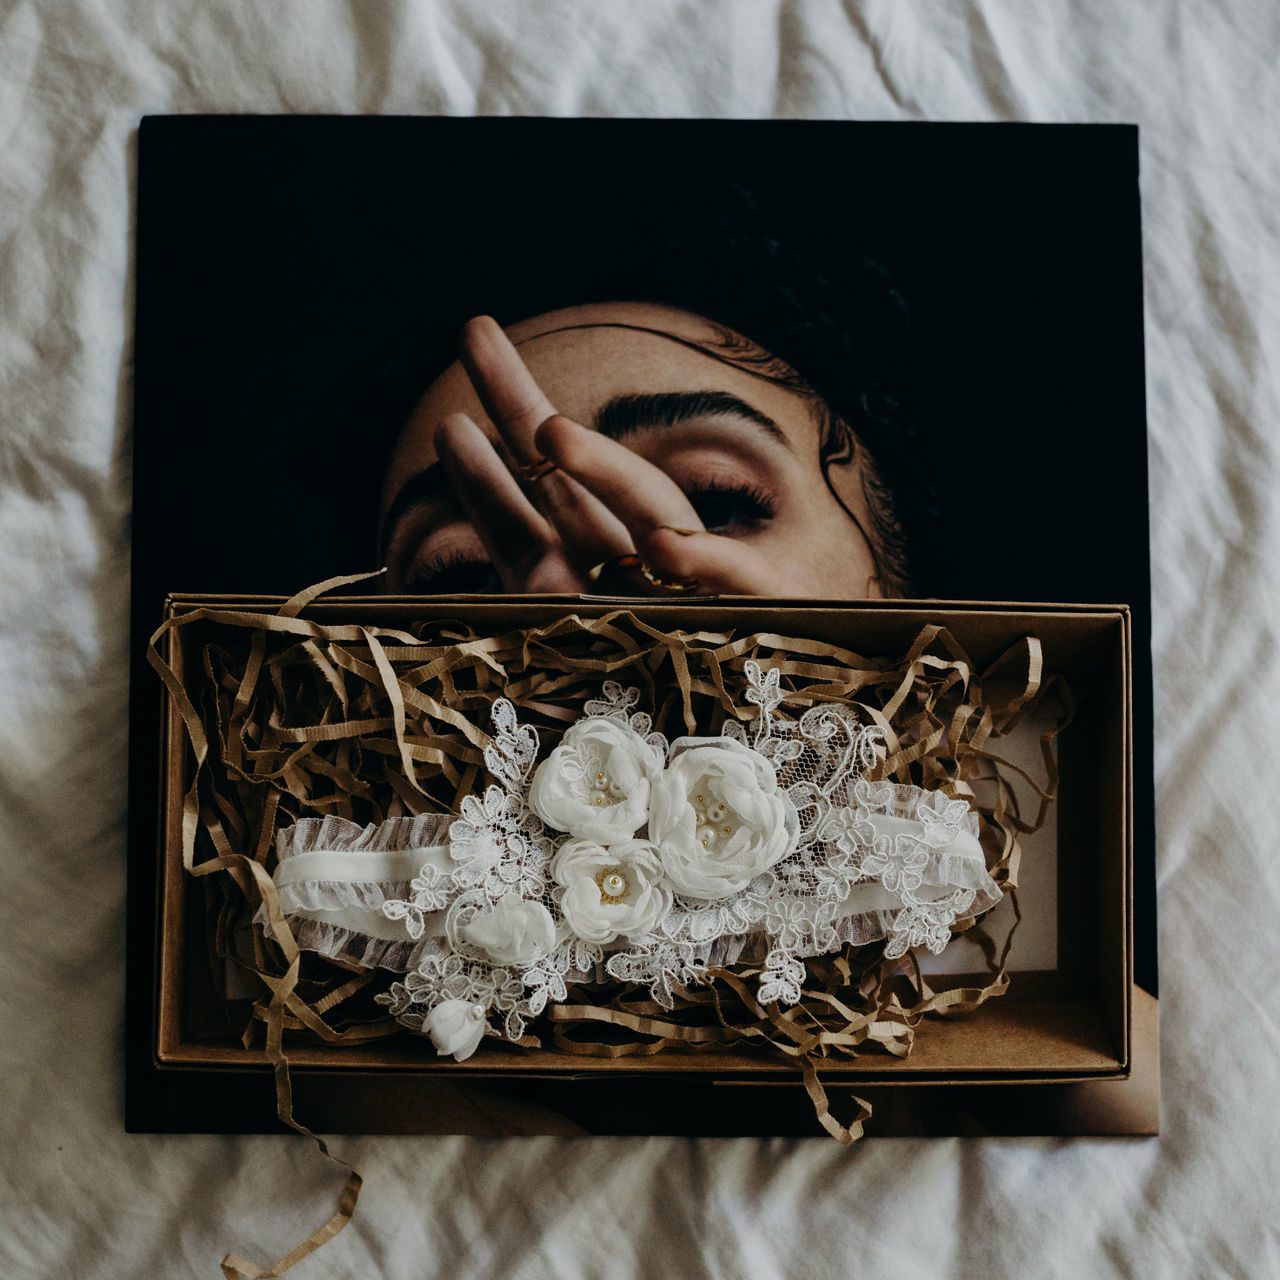 Accessories Art Is Everywhere Bedroom Close-up Day Directly Above Flower Human Hand Indoors  One Person People Picture Frame Real People Wedding Weddings Around The World Young Adult